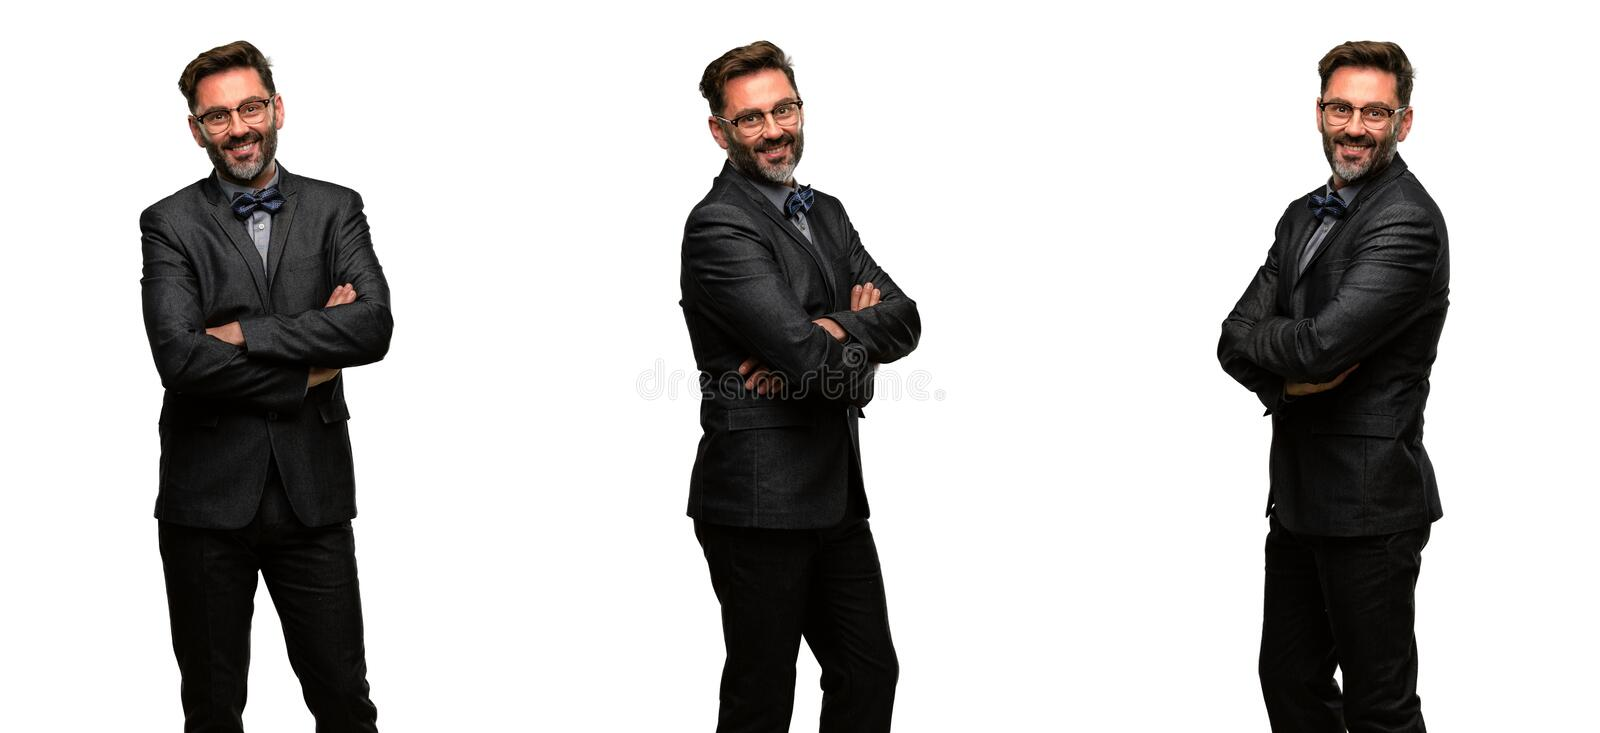 Middle age man wearing a suit royalty free stock photography